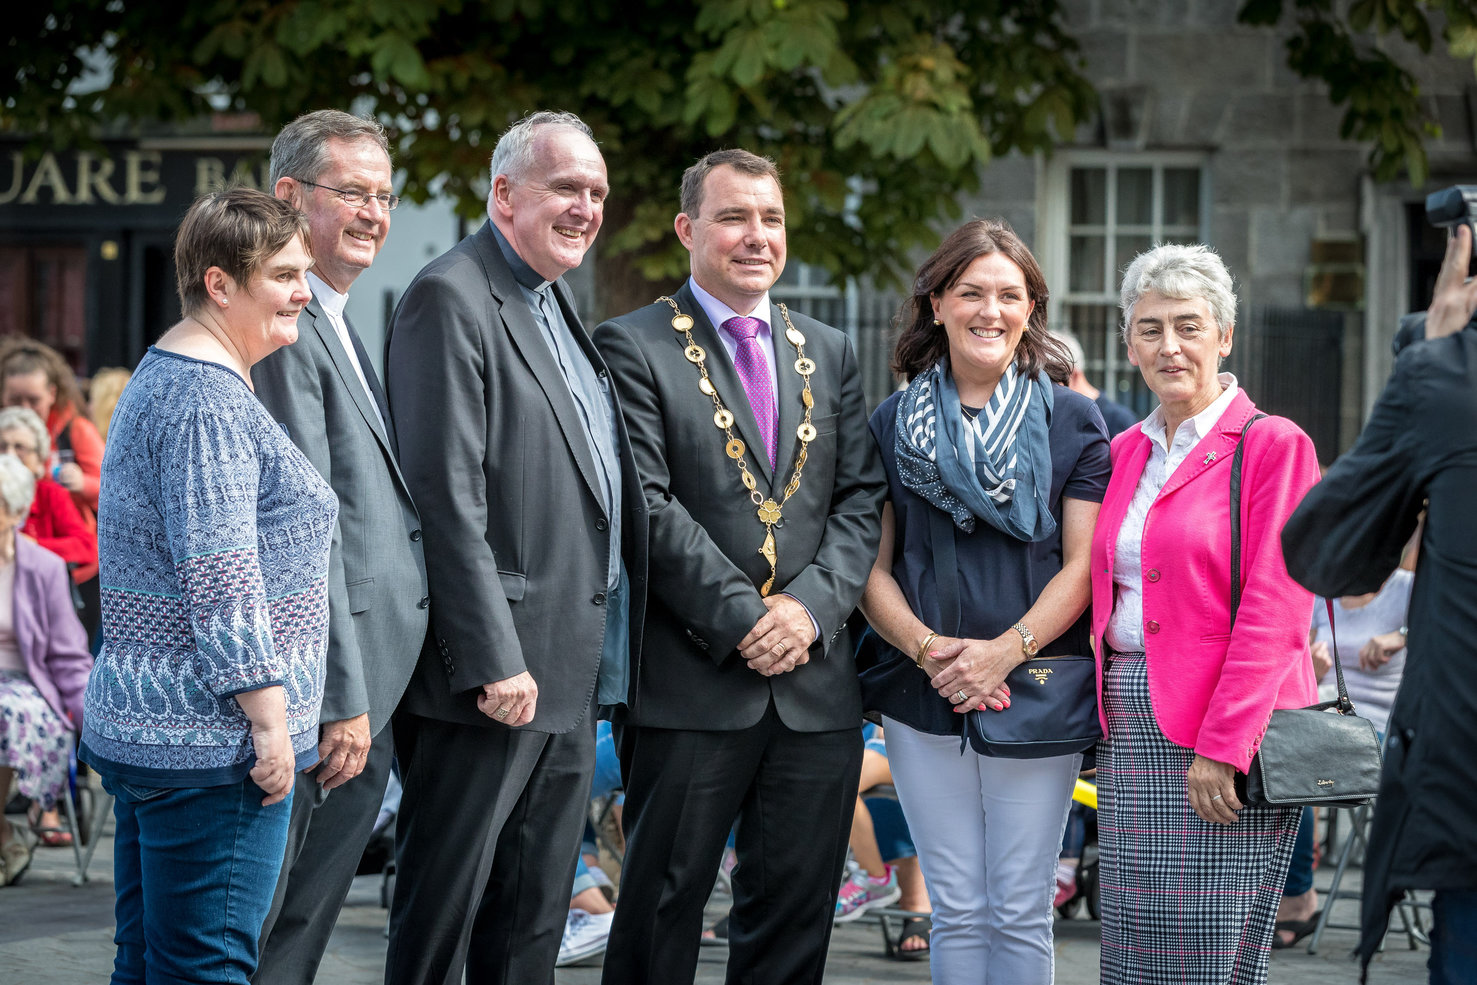 Limerick Diocese Street Party